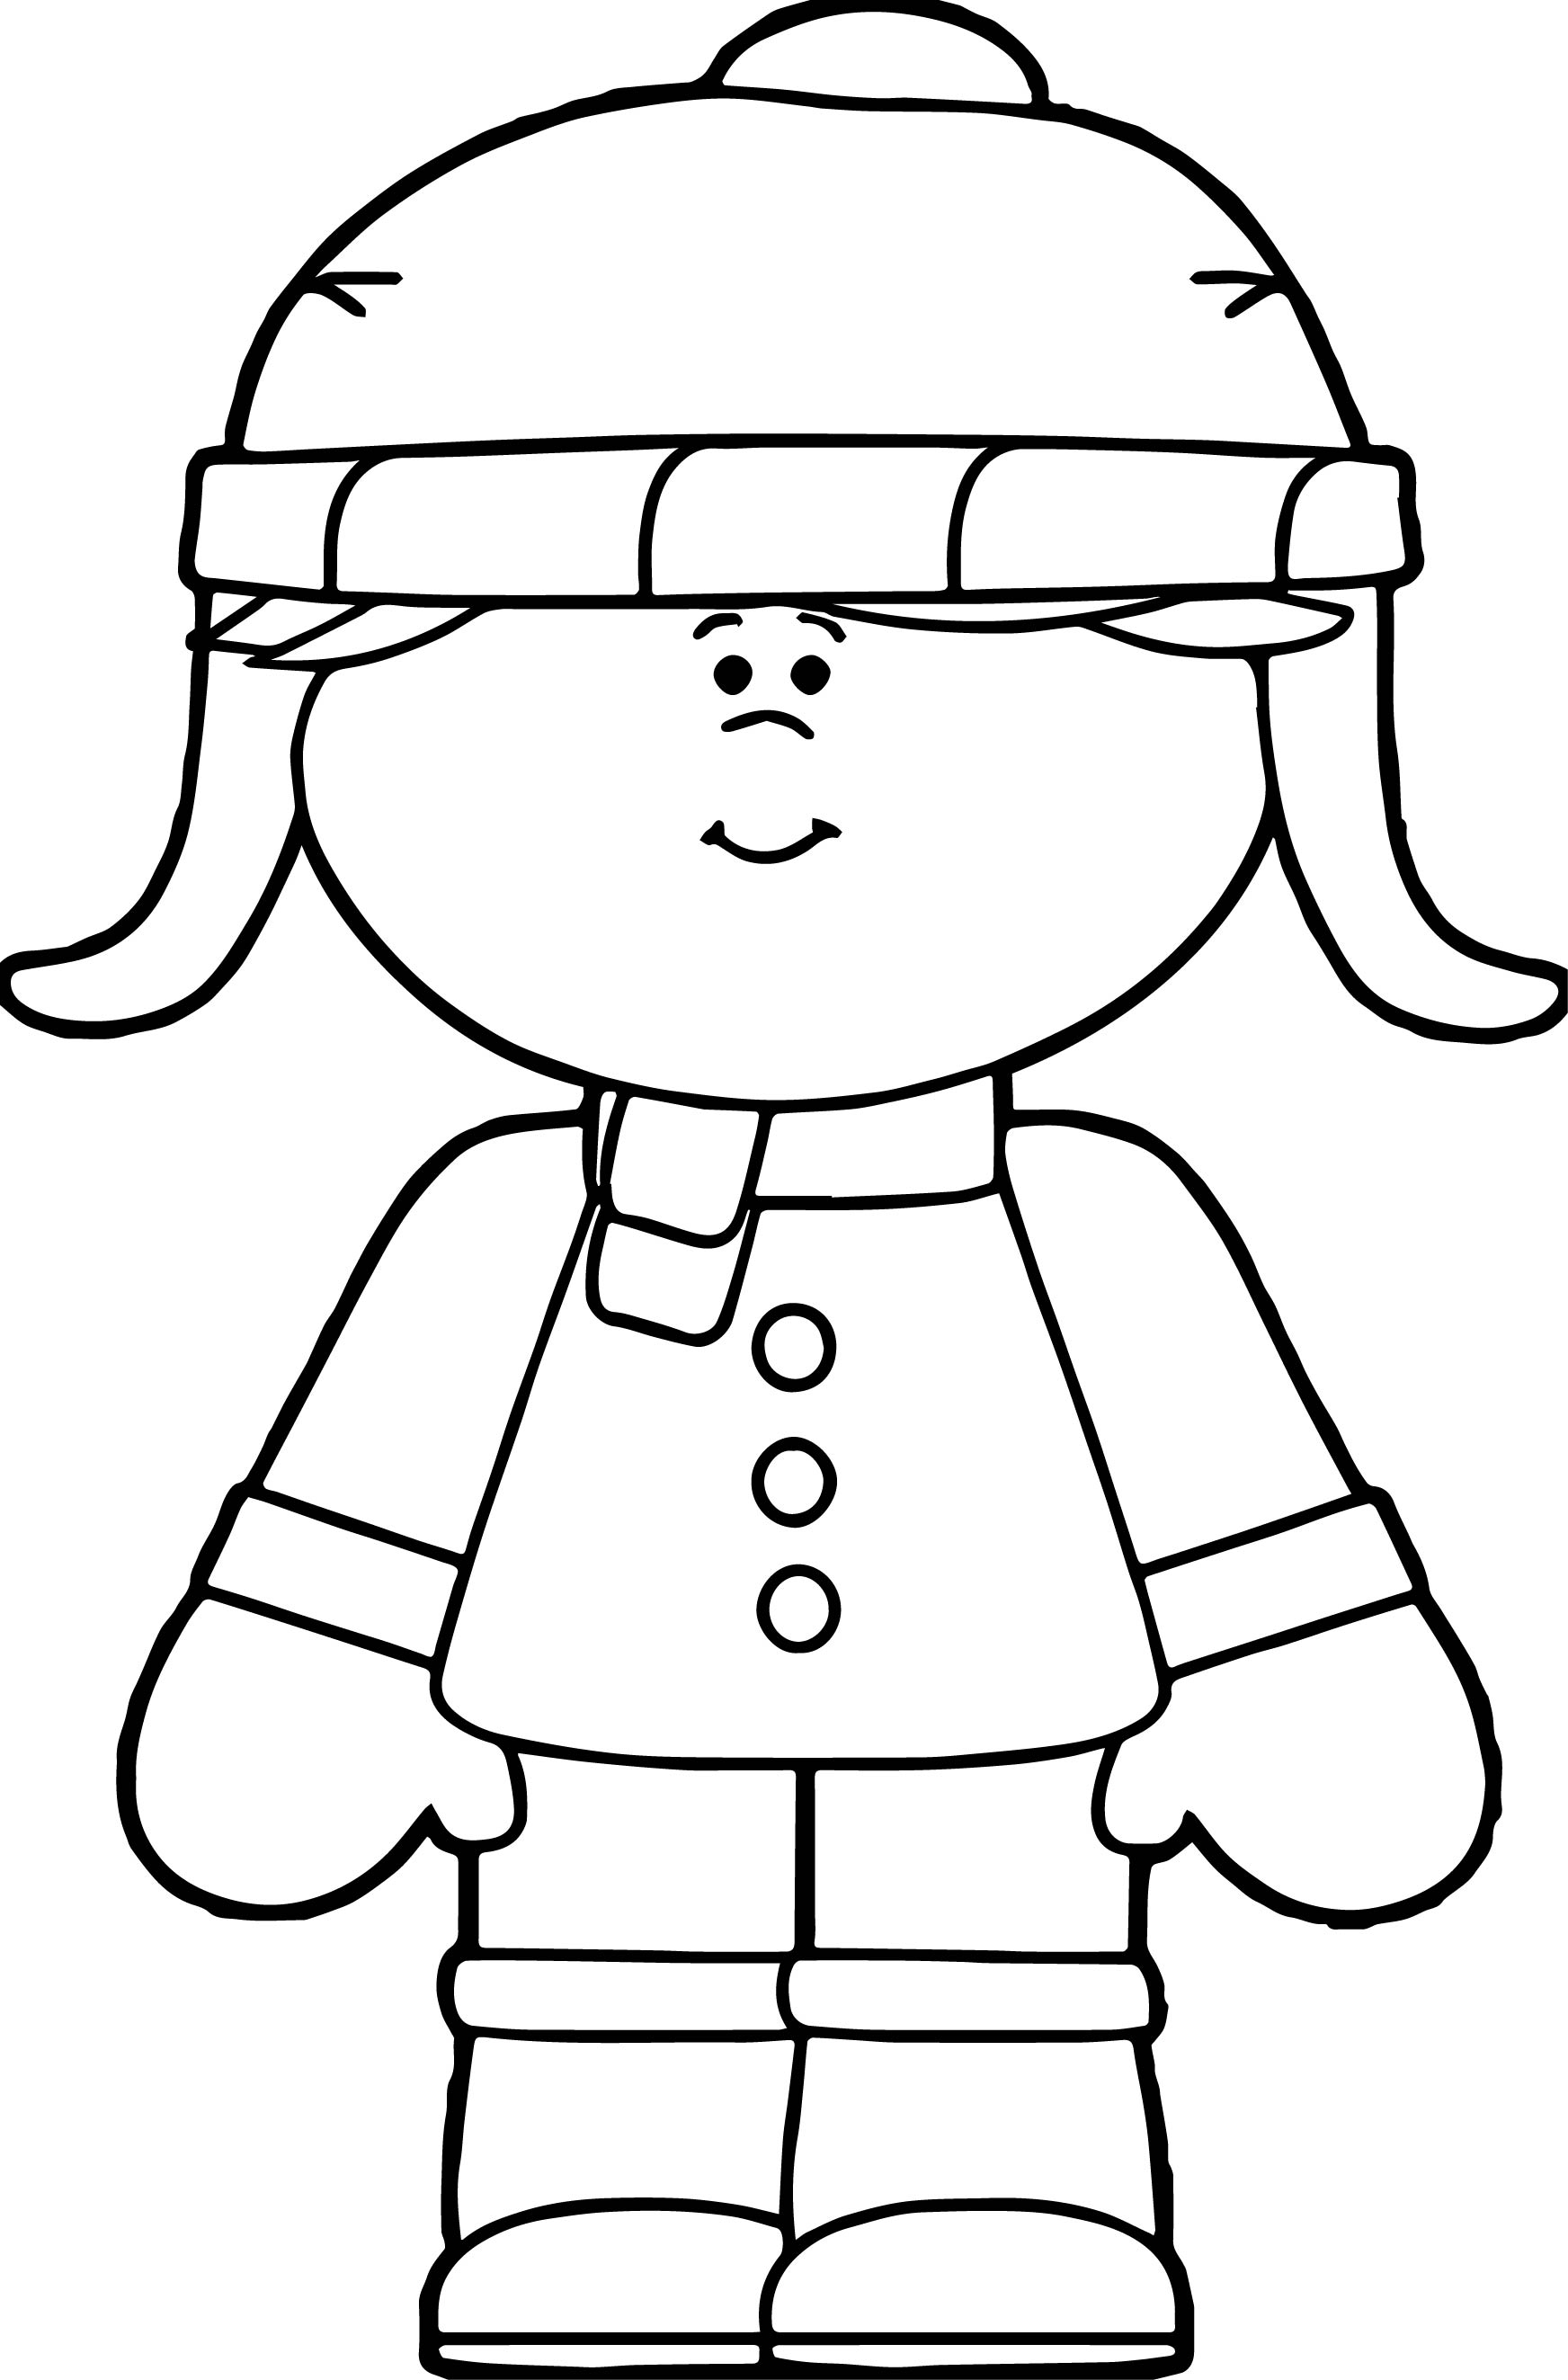 winter little dressed for winter coloring page wecoloringpage